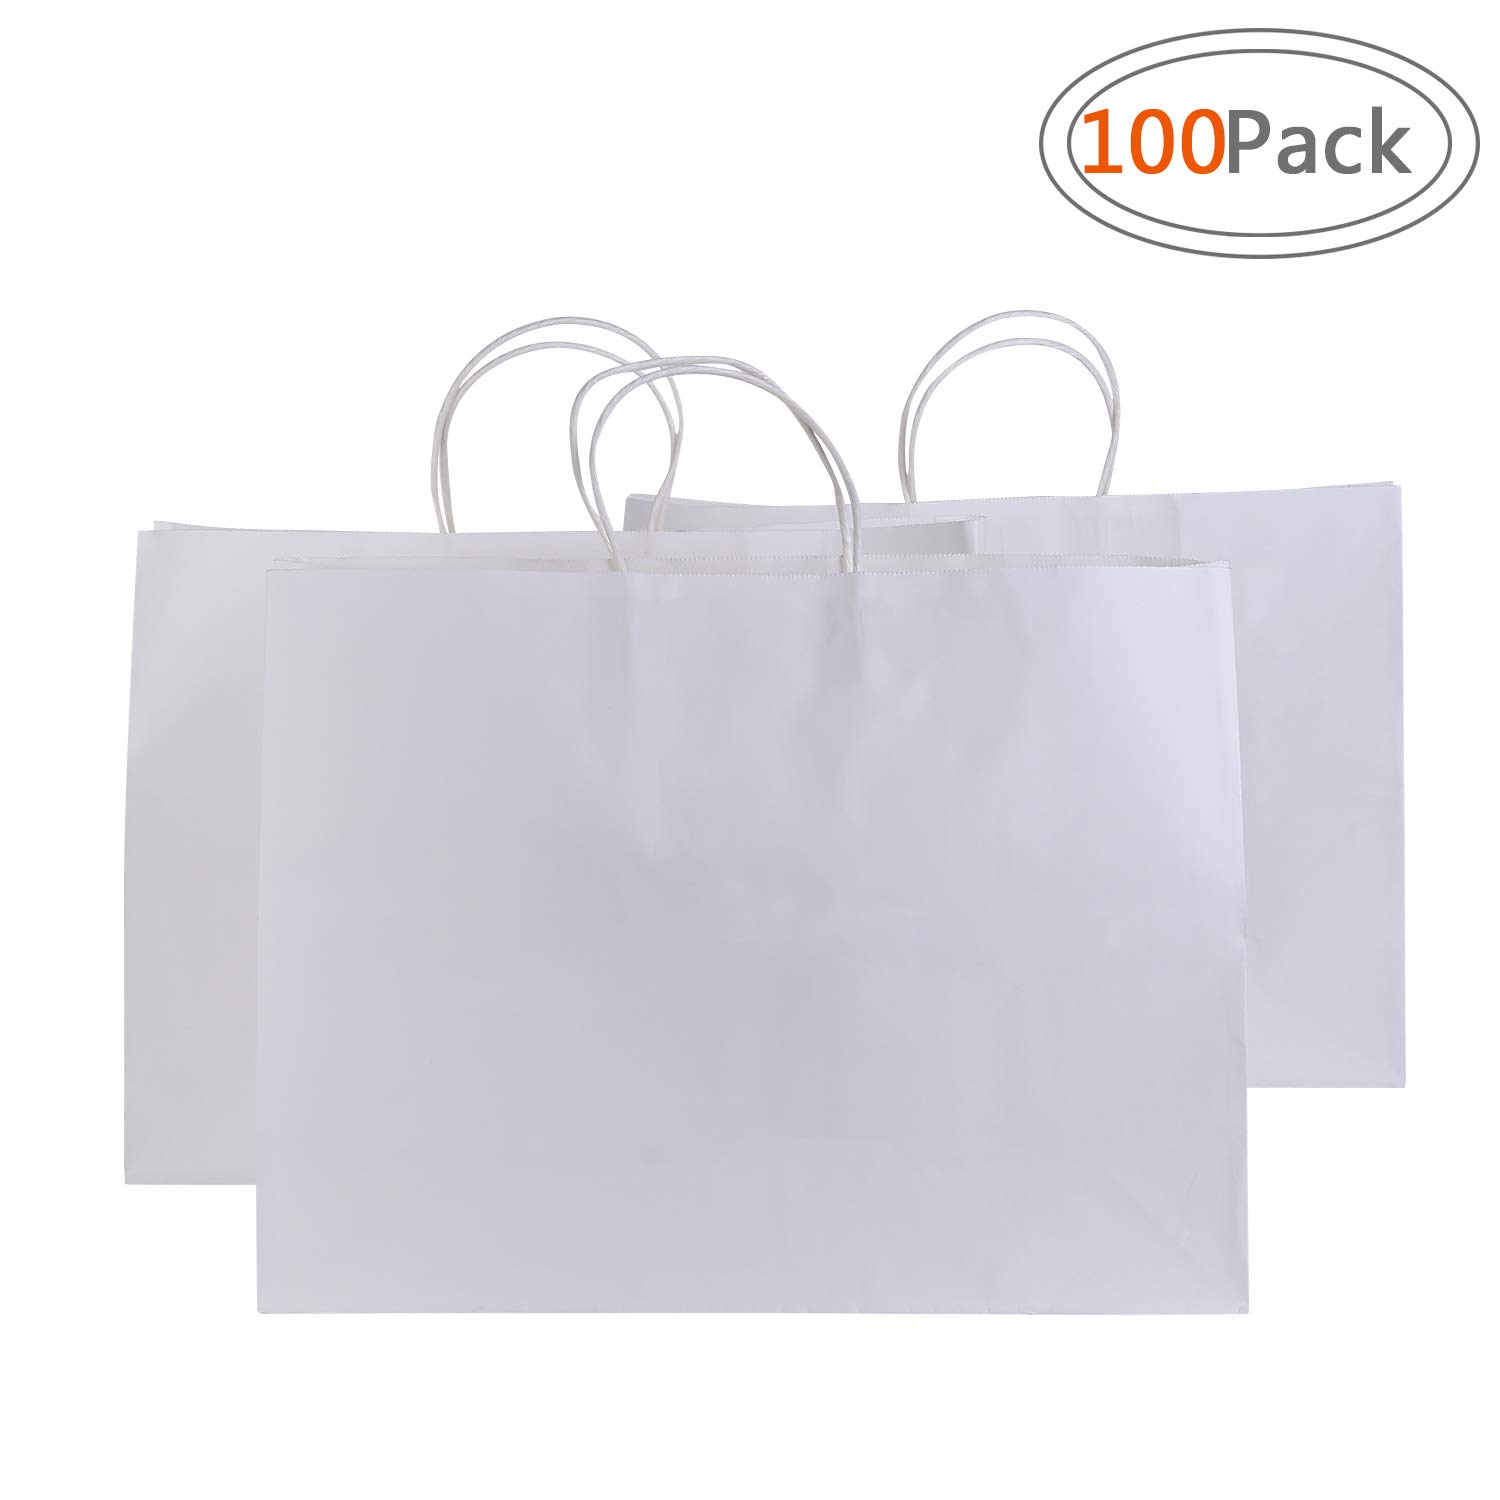 Road 16x6x12 Inches 100 Pcs Large Kraft White Paper Bags with Handles, Shopping, Grocery, Mechandise, Party Bags by Road